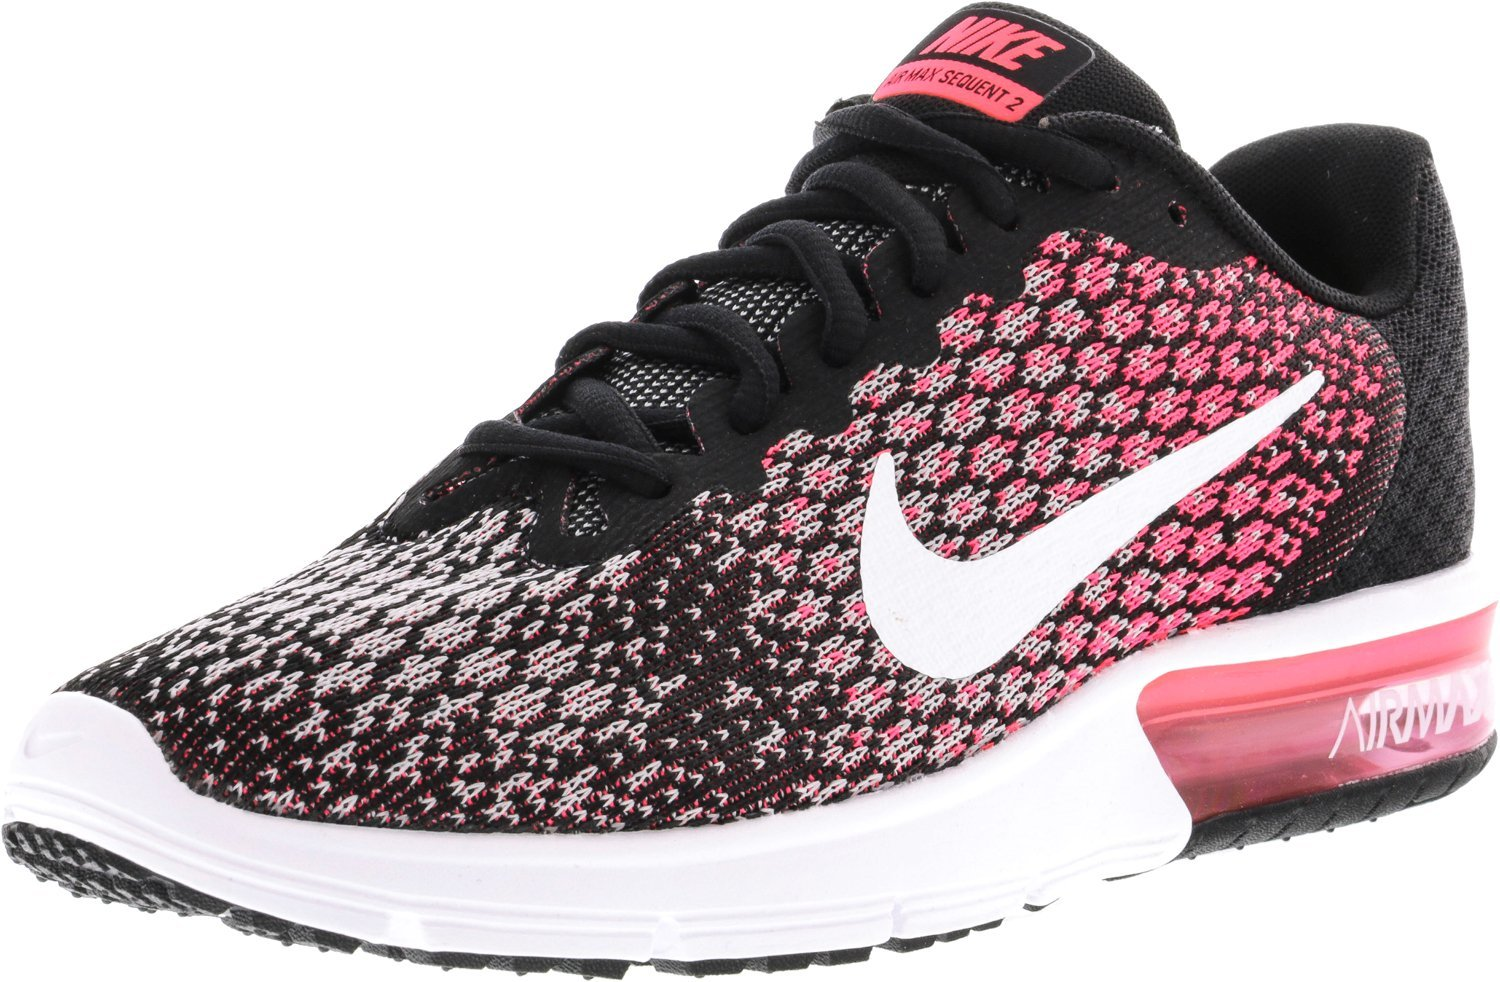 NIKE Men's Air Max Sequent 2 Running Shoe B01H4XBY7I 12 B(M) US|Black/White/Racer Pink